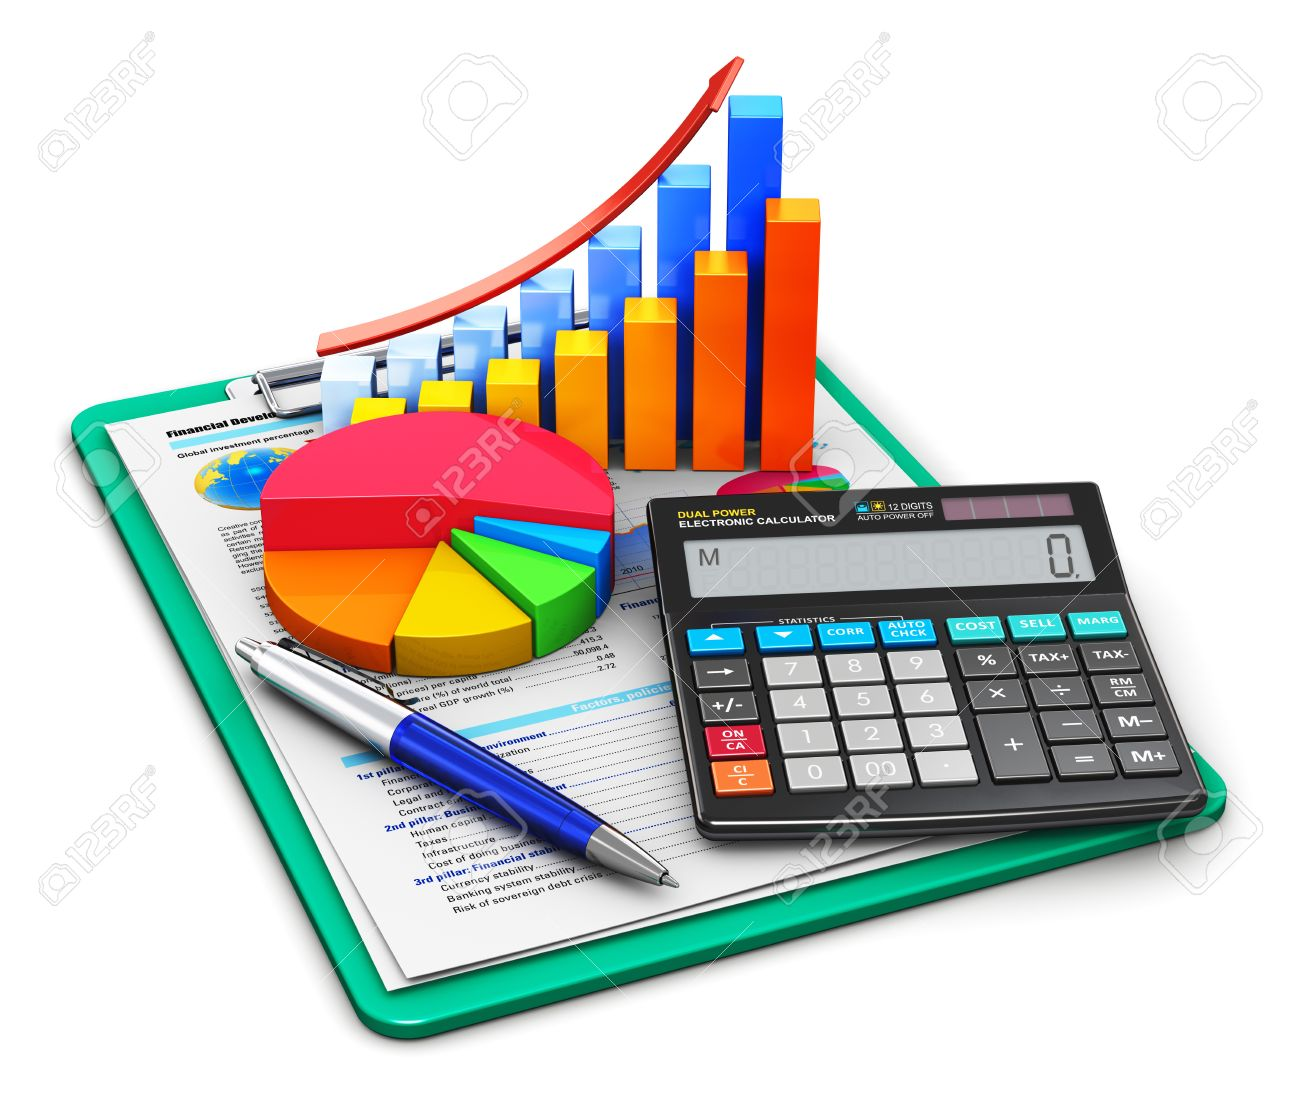 creative abstract business finance tax accounting banking